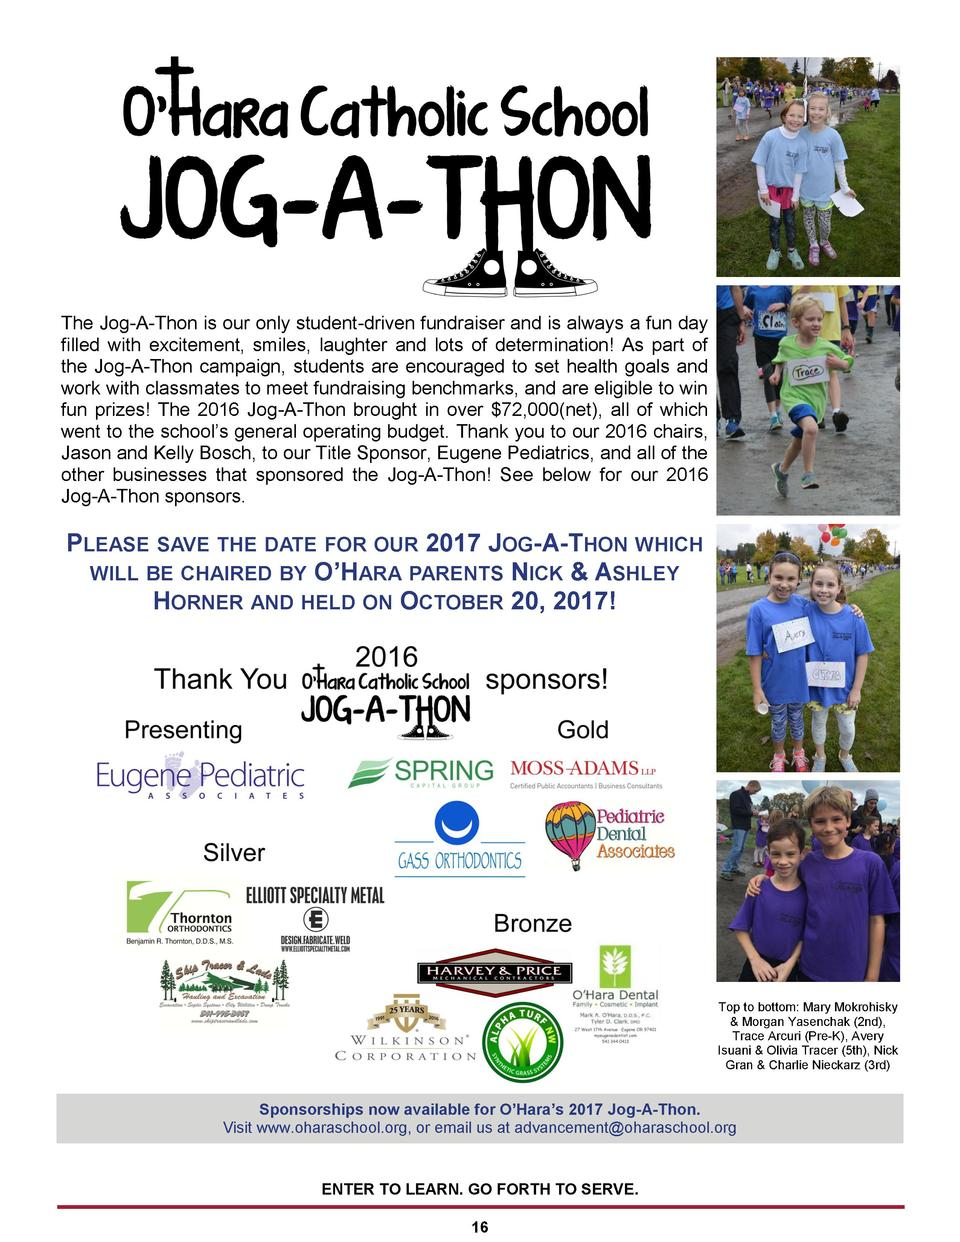 The Jog-A-Thon is our only student-driven fundraiser and is always a fun day filled with excitement, smiles, laughter and ...